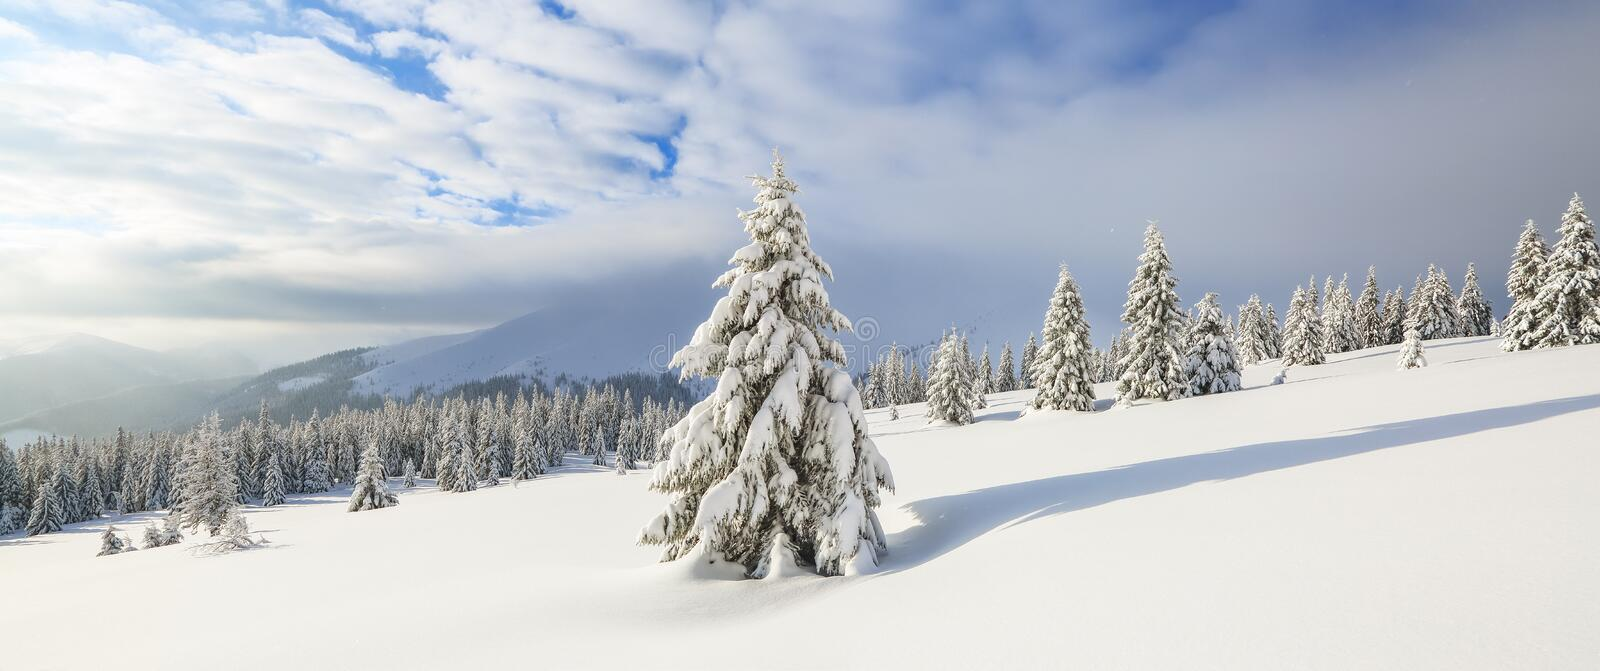 Winter landscape. Spectacular panorama is opened on mountains, trees covered with white snow, lawn and blue sky with clouds.  royalty free stock image